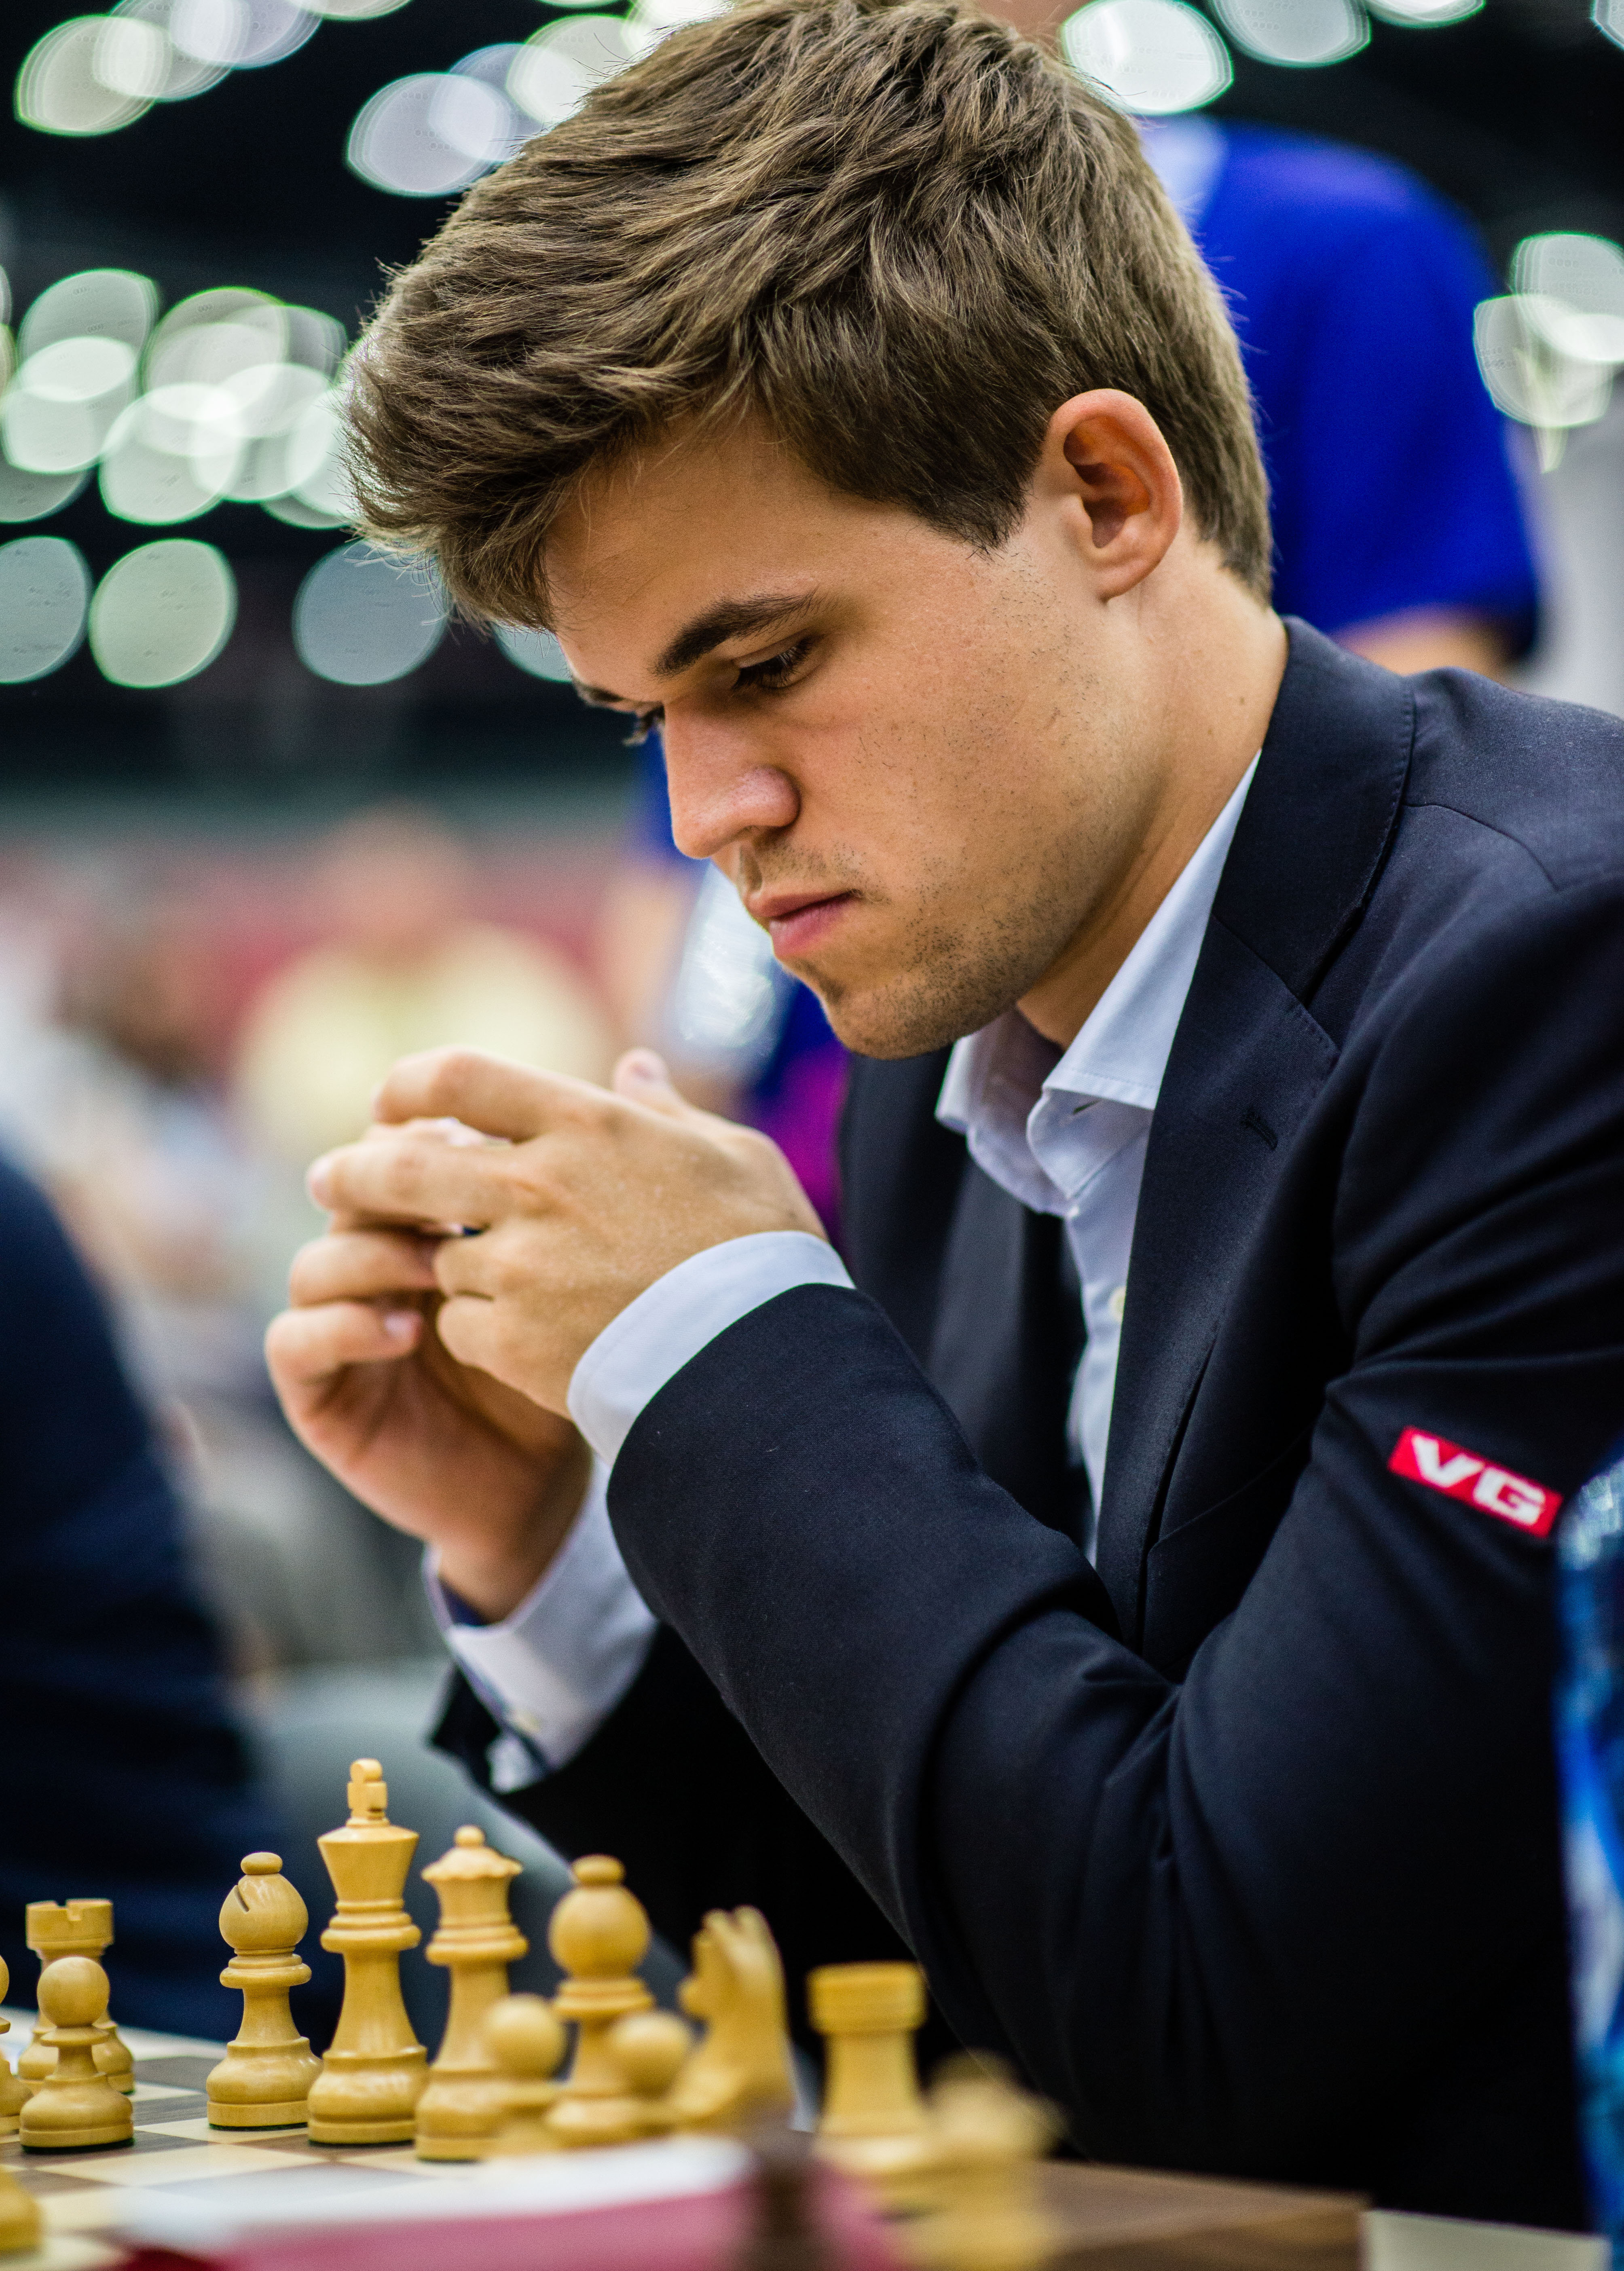 The 27-year old son of father Henrik Albert Carlsen and mother Sigrun Øen Magnus Carlsen in 2018 photo. Magnus Carlsen earned a  million dollar salary - leaving the net worth at 10 million in 2018